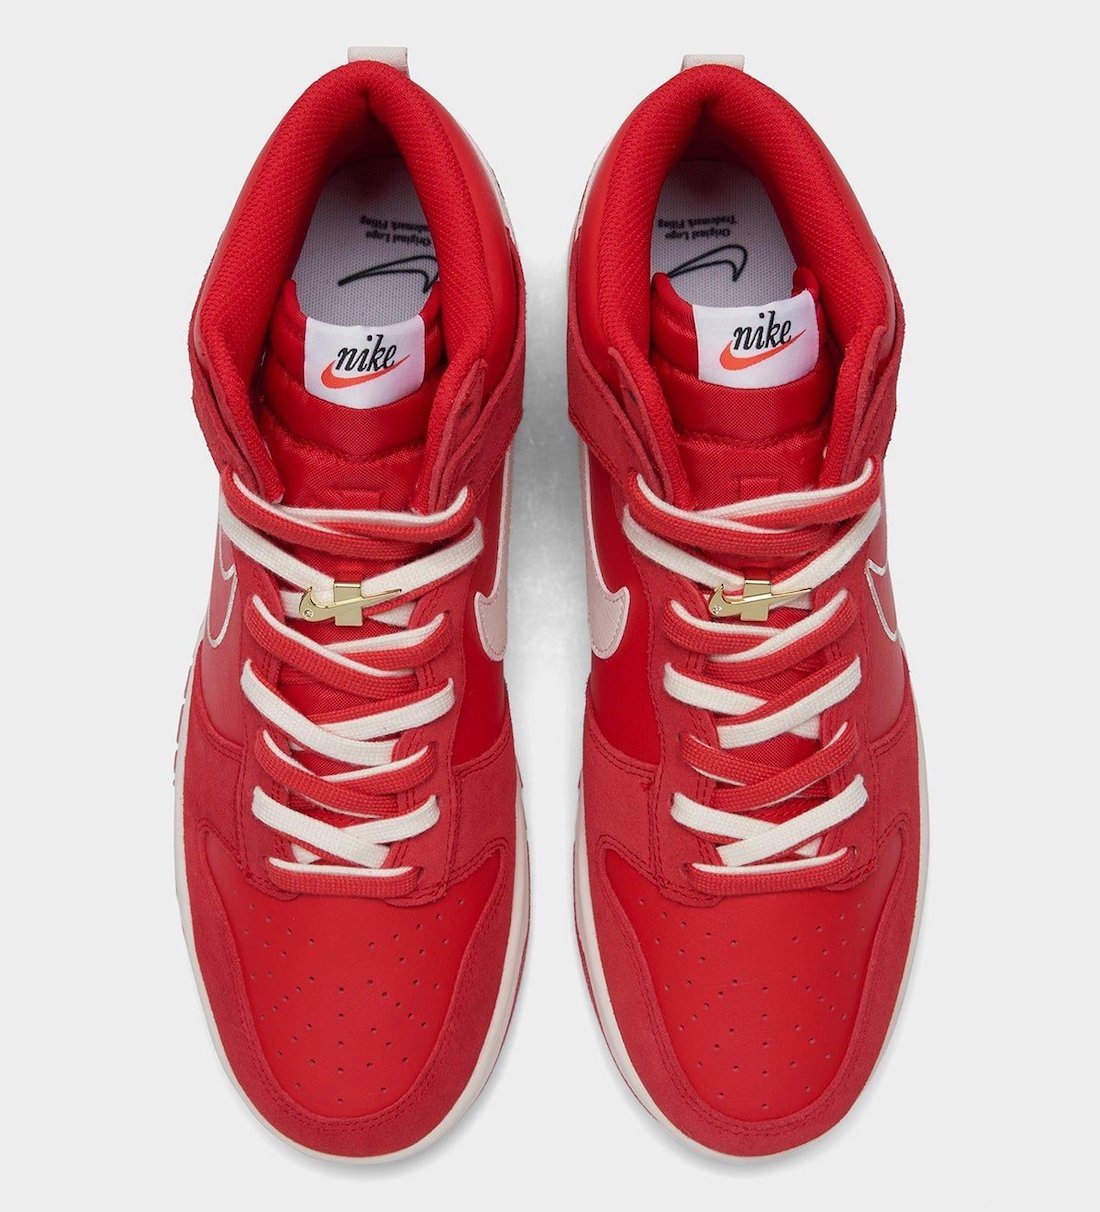 Nike Dunk High University Red Sail DH0960-600 Release Date